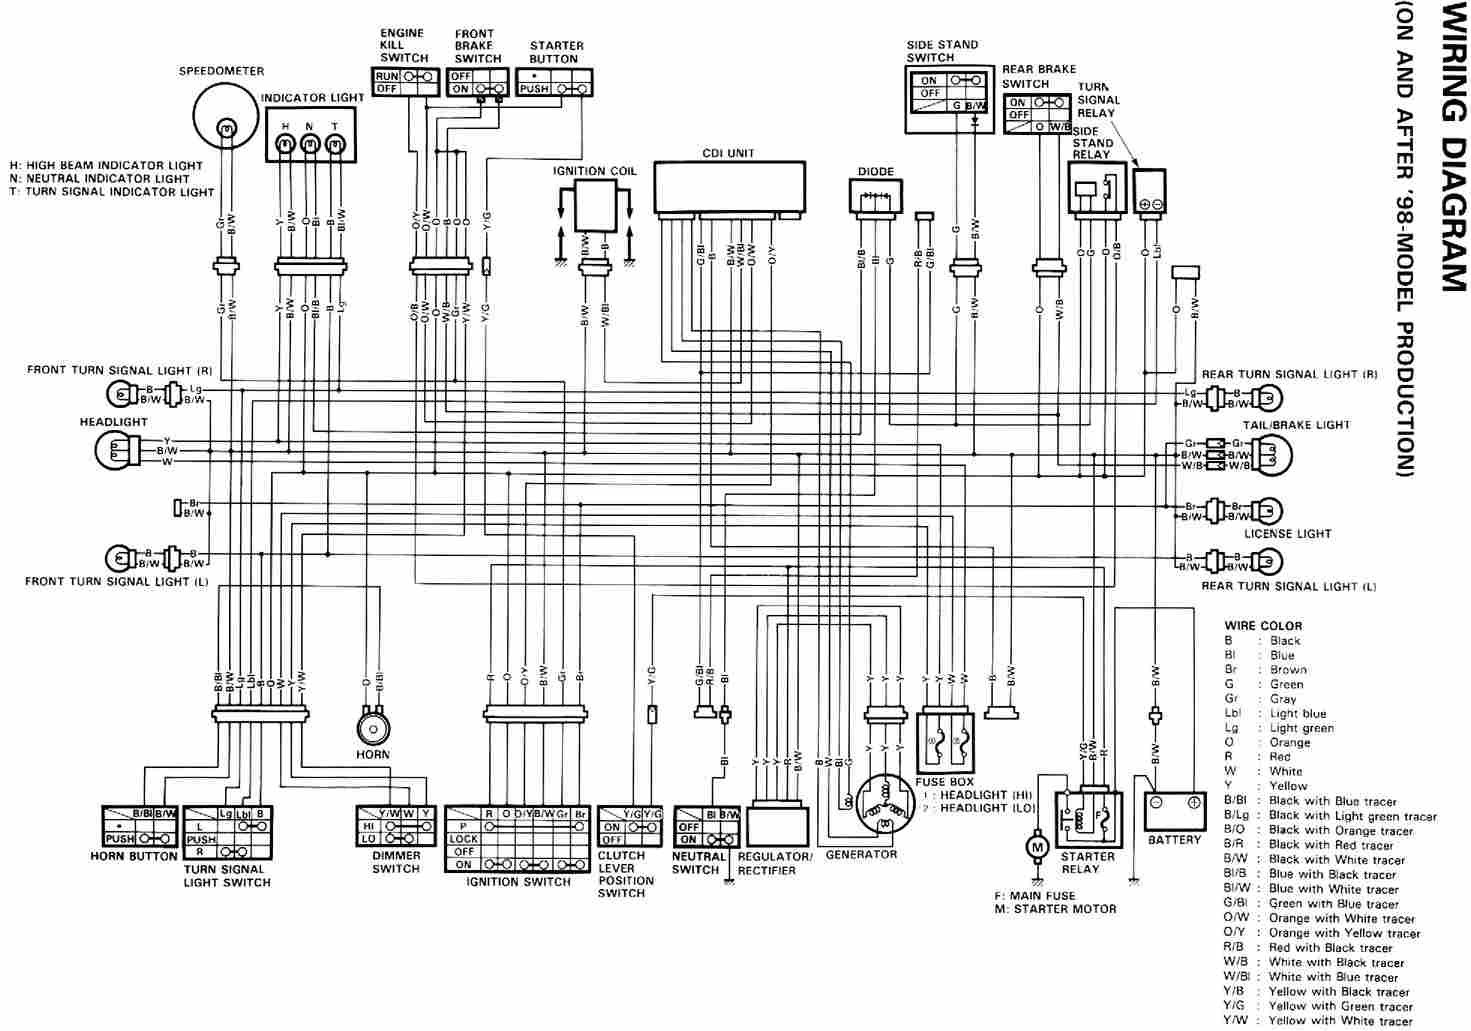 Wiring Diagram Gsxr 600 on suzuki 300 outboard wiring diagram